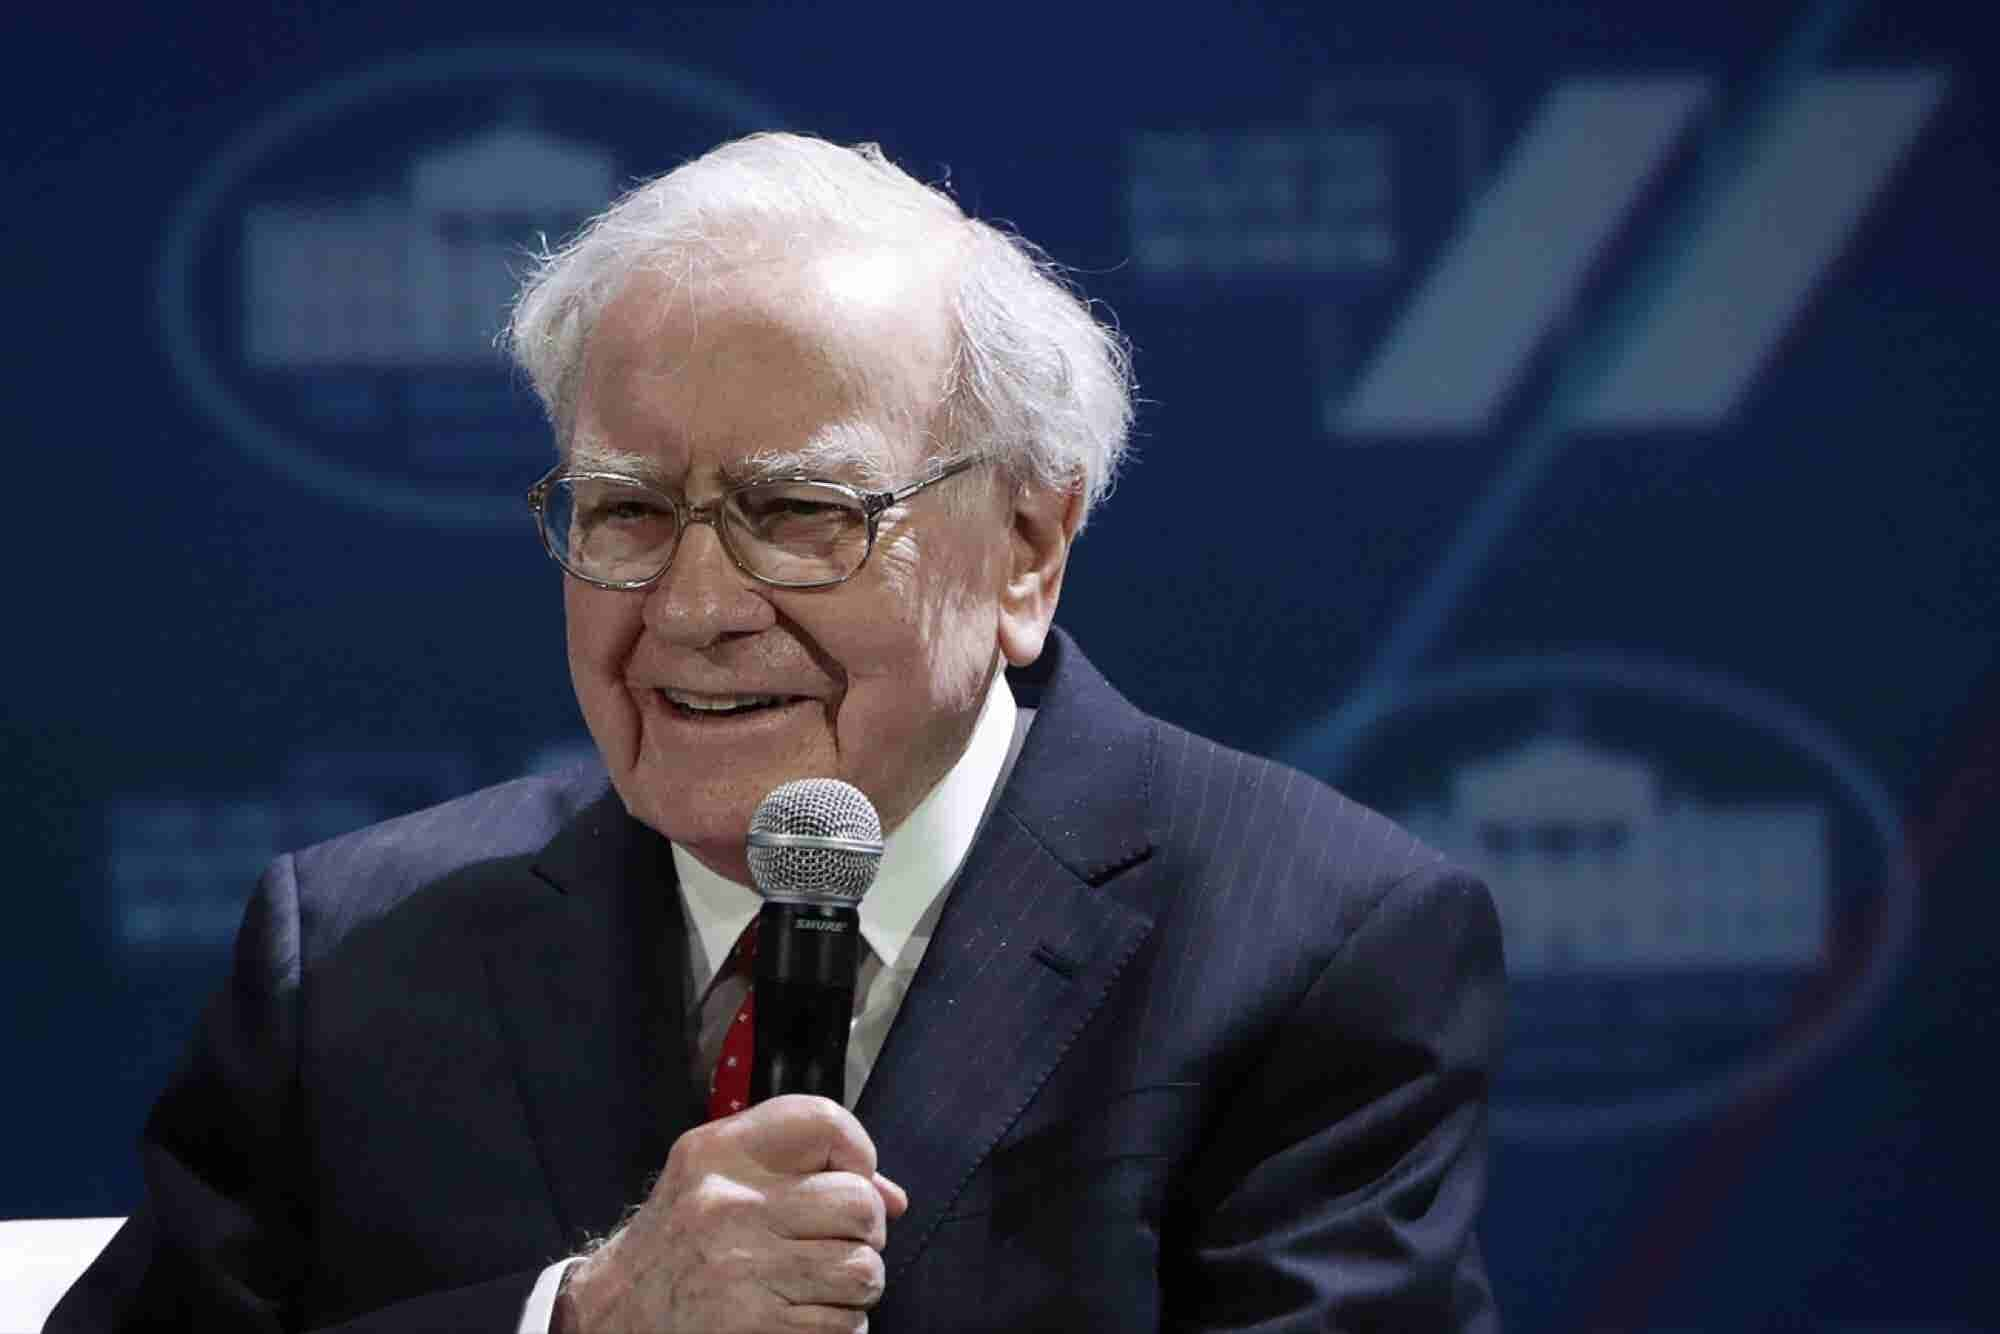 Warren Buffett's Firm Takes Bigger Bite of Apple, Pares Wal-Mart